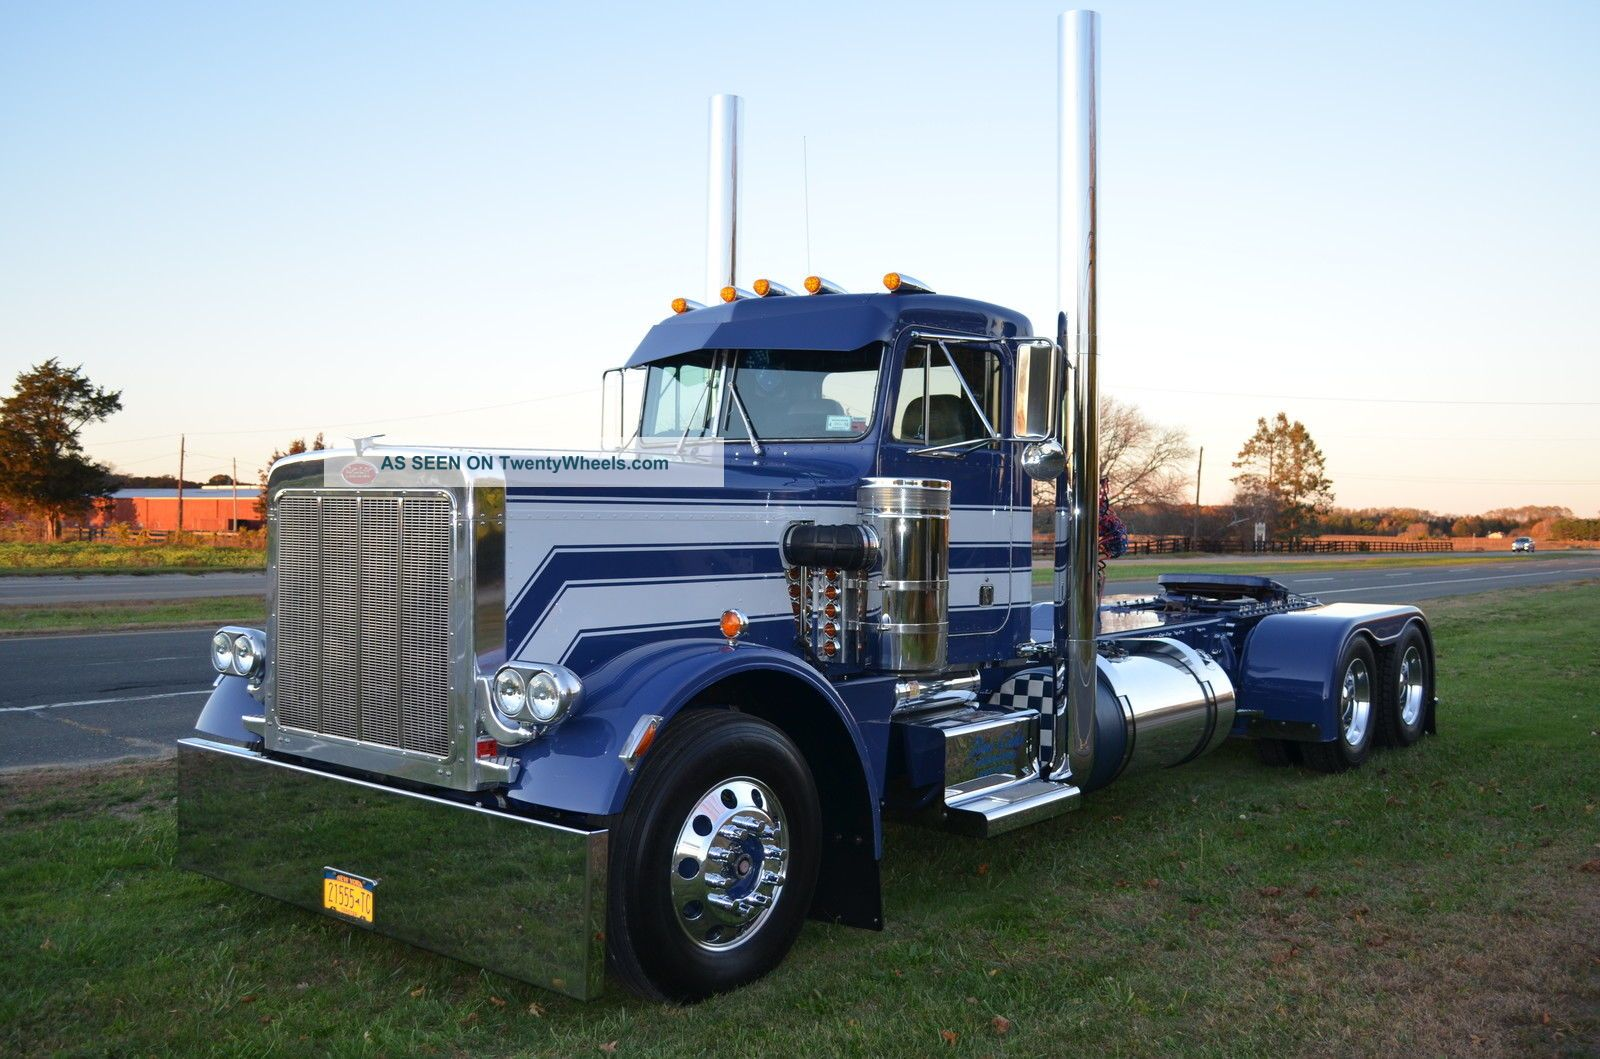 Caterpillar Truck V1 0 Mod in addition 6284 1988 freightliner cab over entry besides Youve Got To See This Peterbilt Semi Truck Drag Race likewise Man Tgx Xxl 8x6 furthermore 23065 1971 peterbilt 359. on peterbilt dump trailers